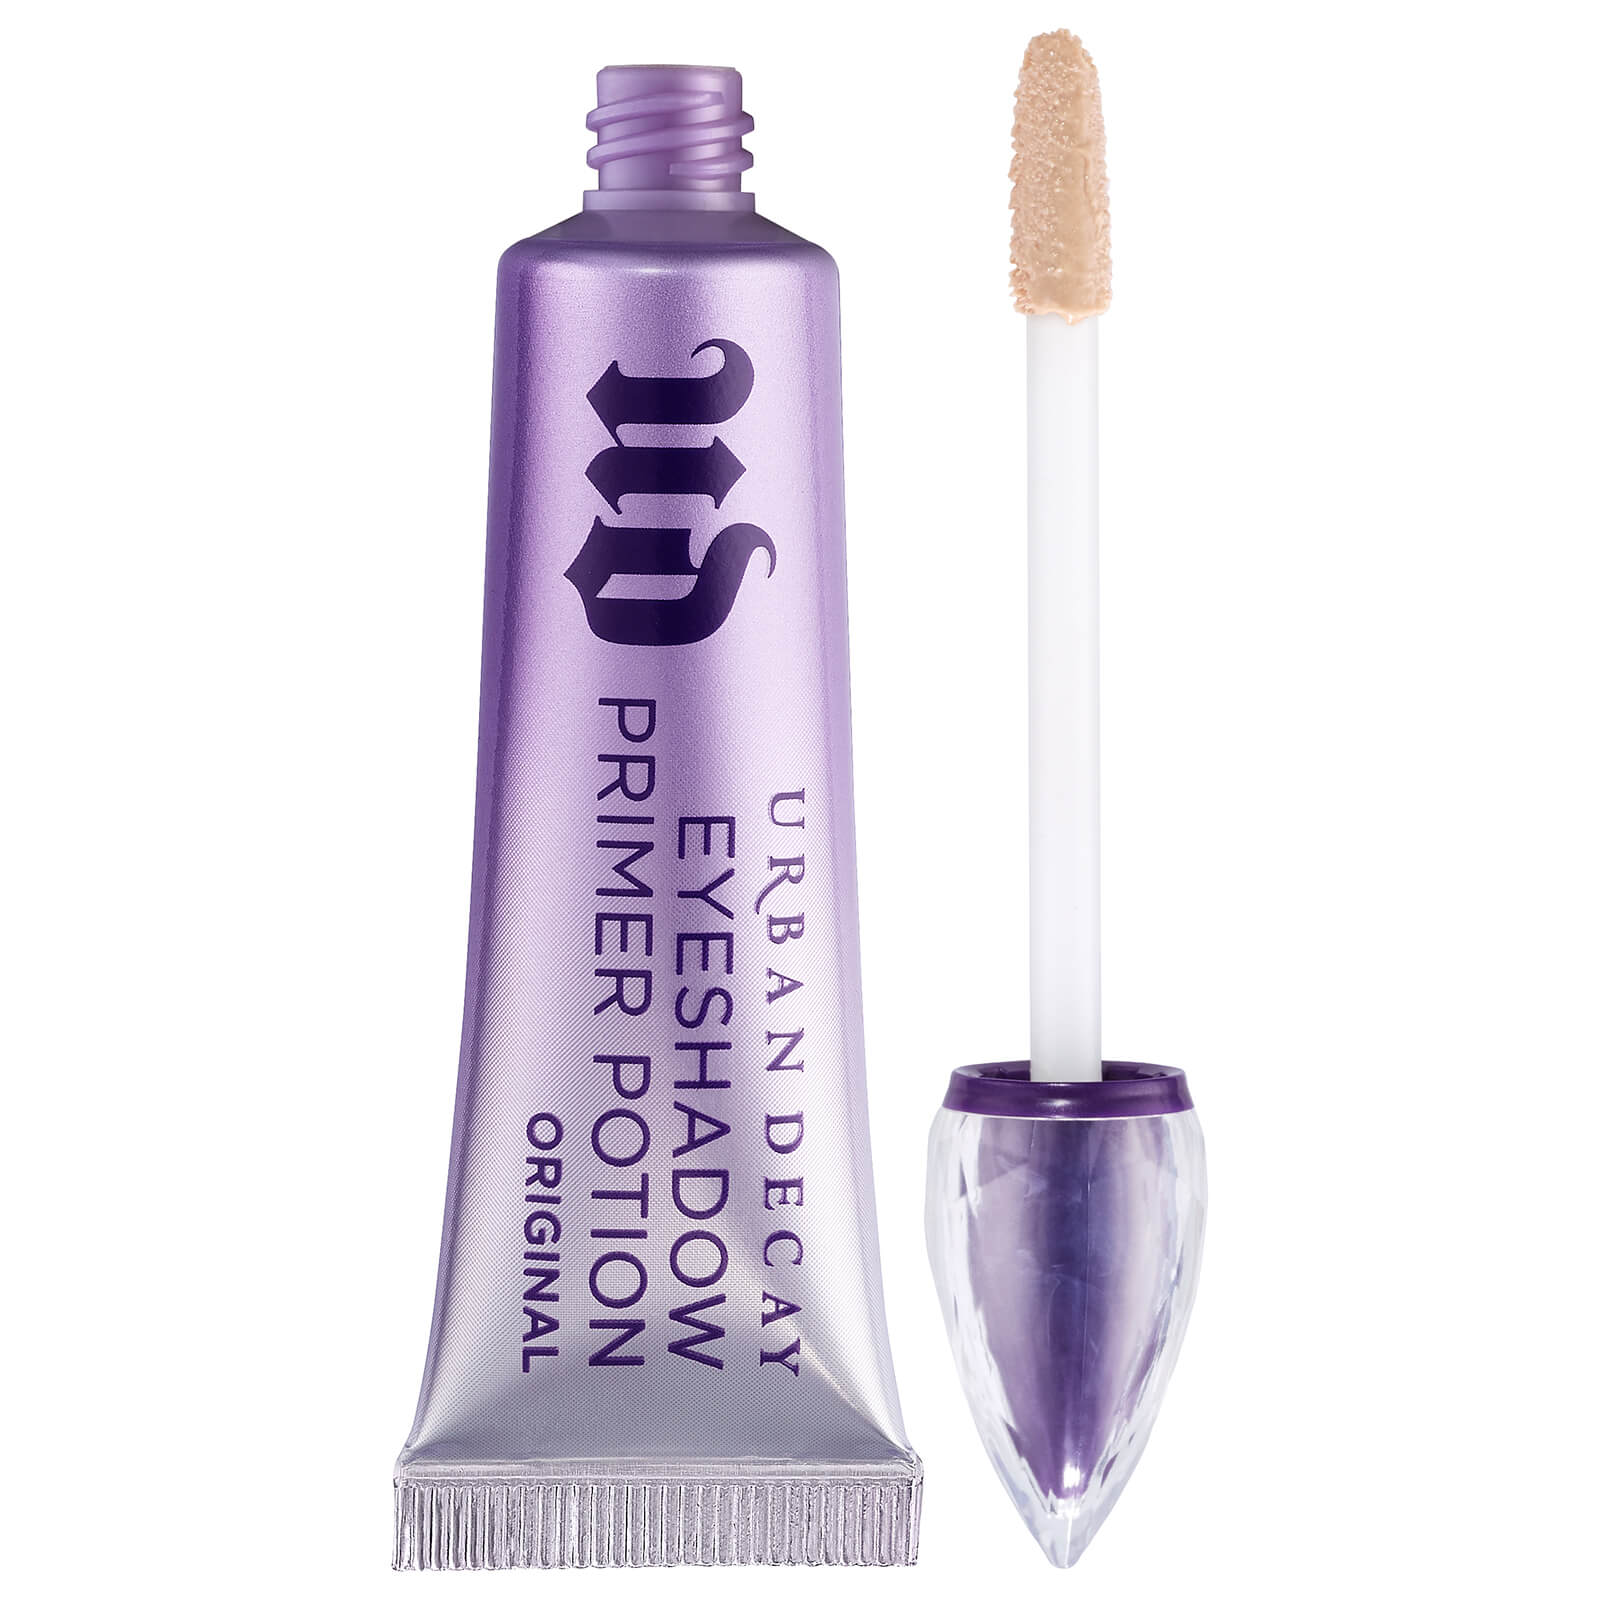 How to apply eye primer urban decay